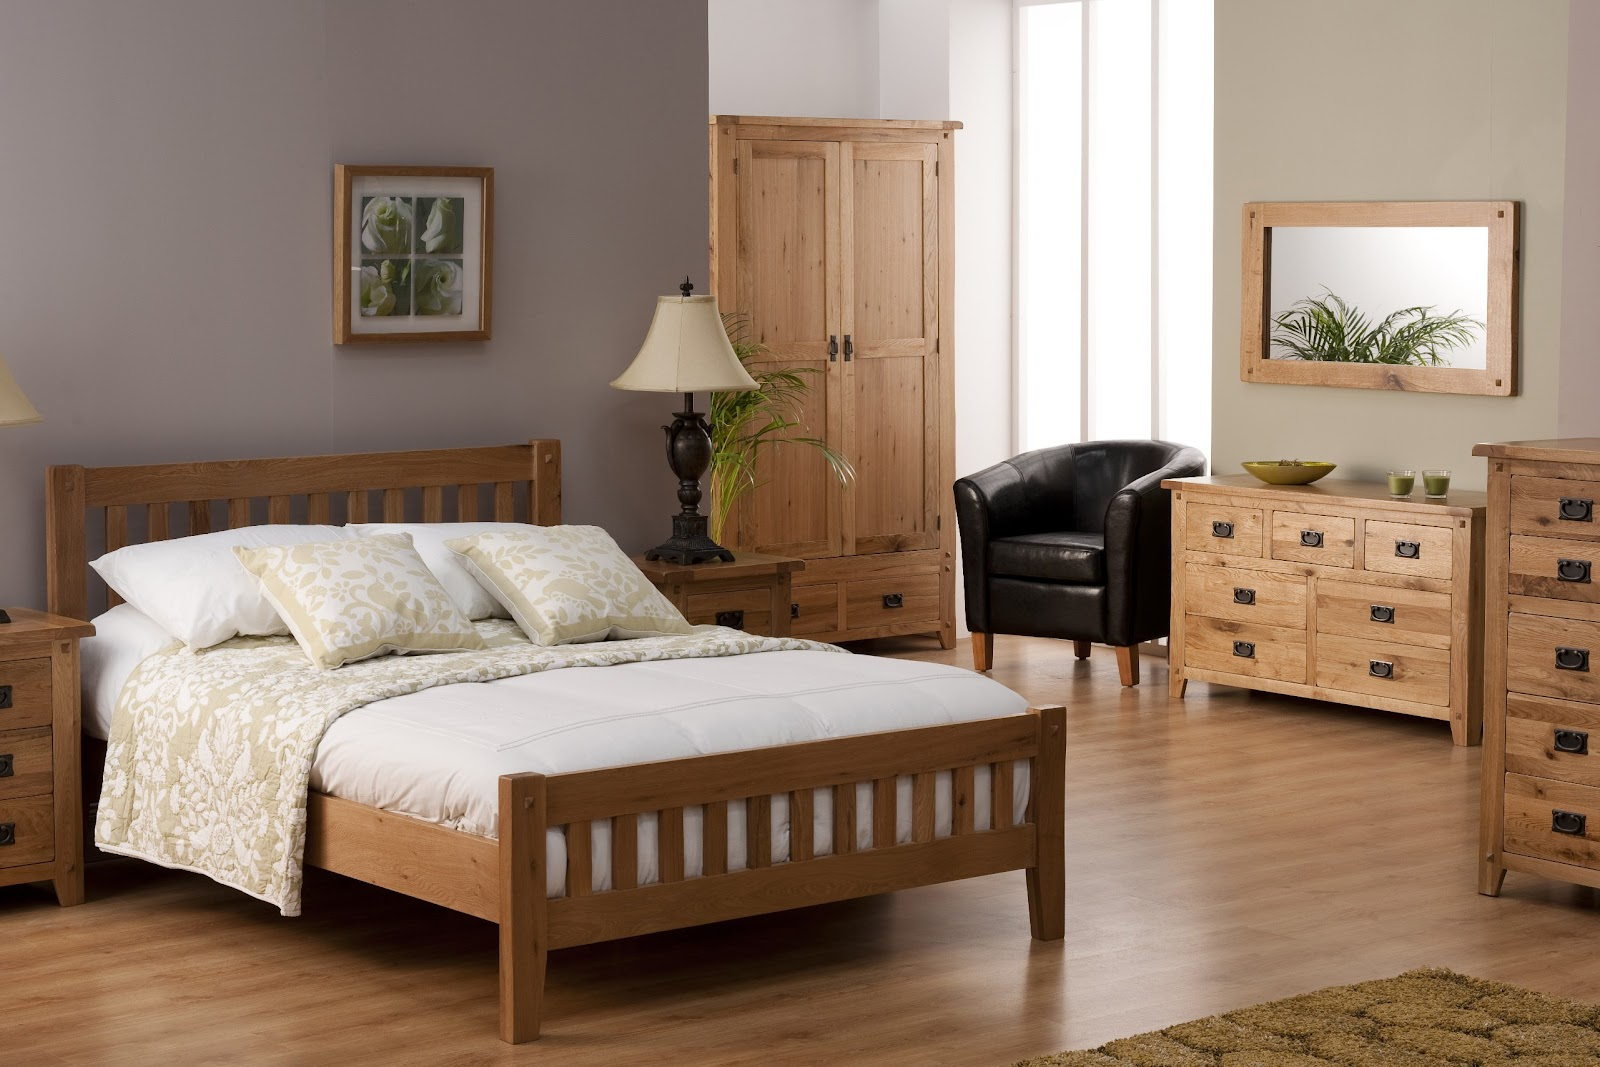 _Stylish_wooden_furniture_for_the_bedroom_091602_.jpg